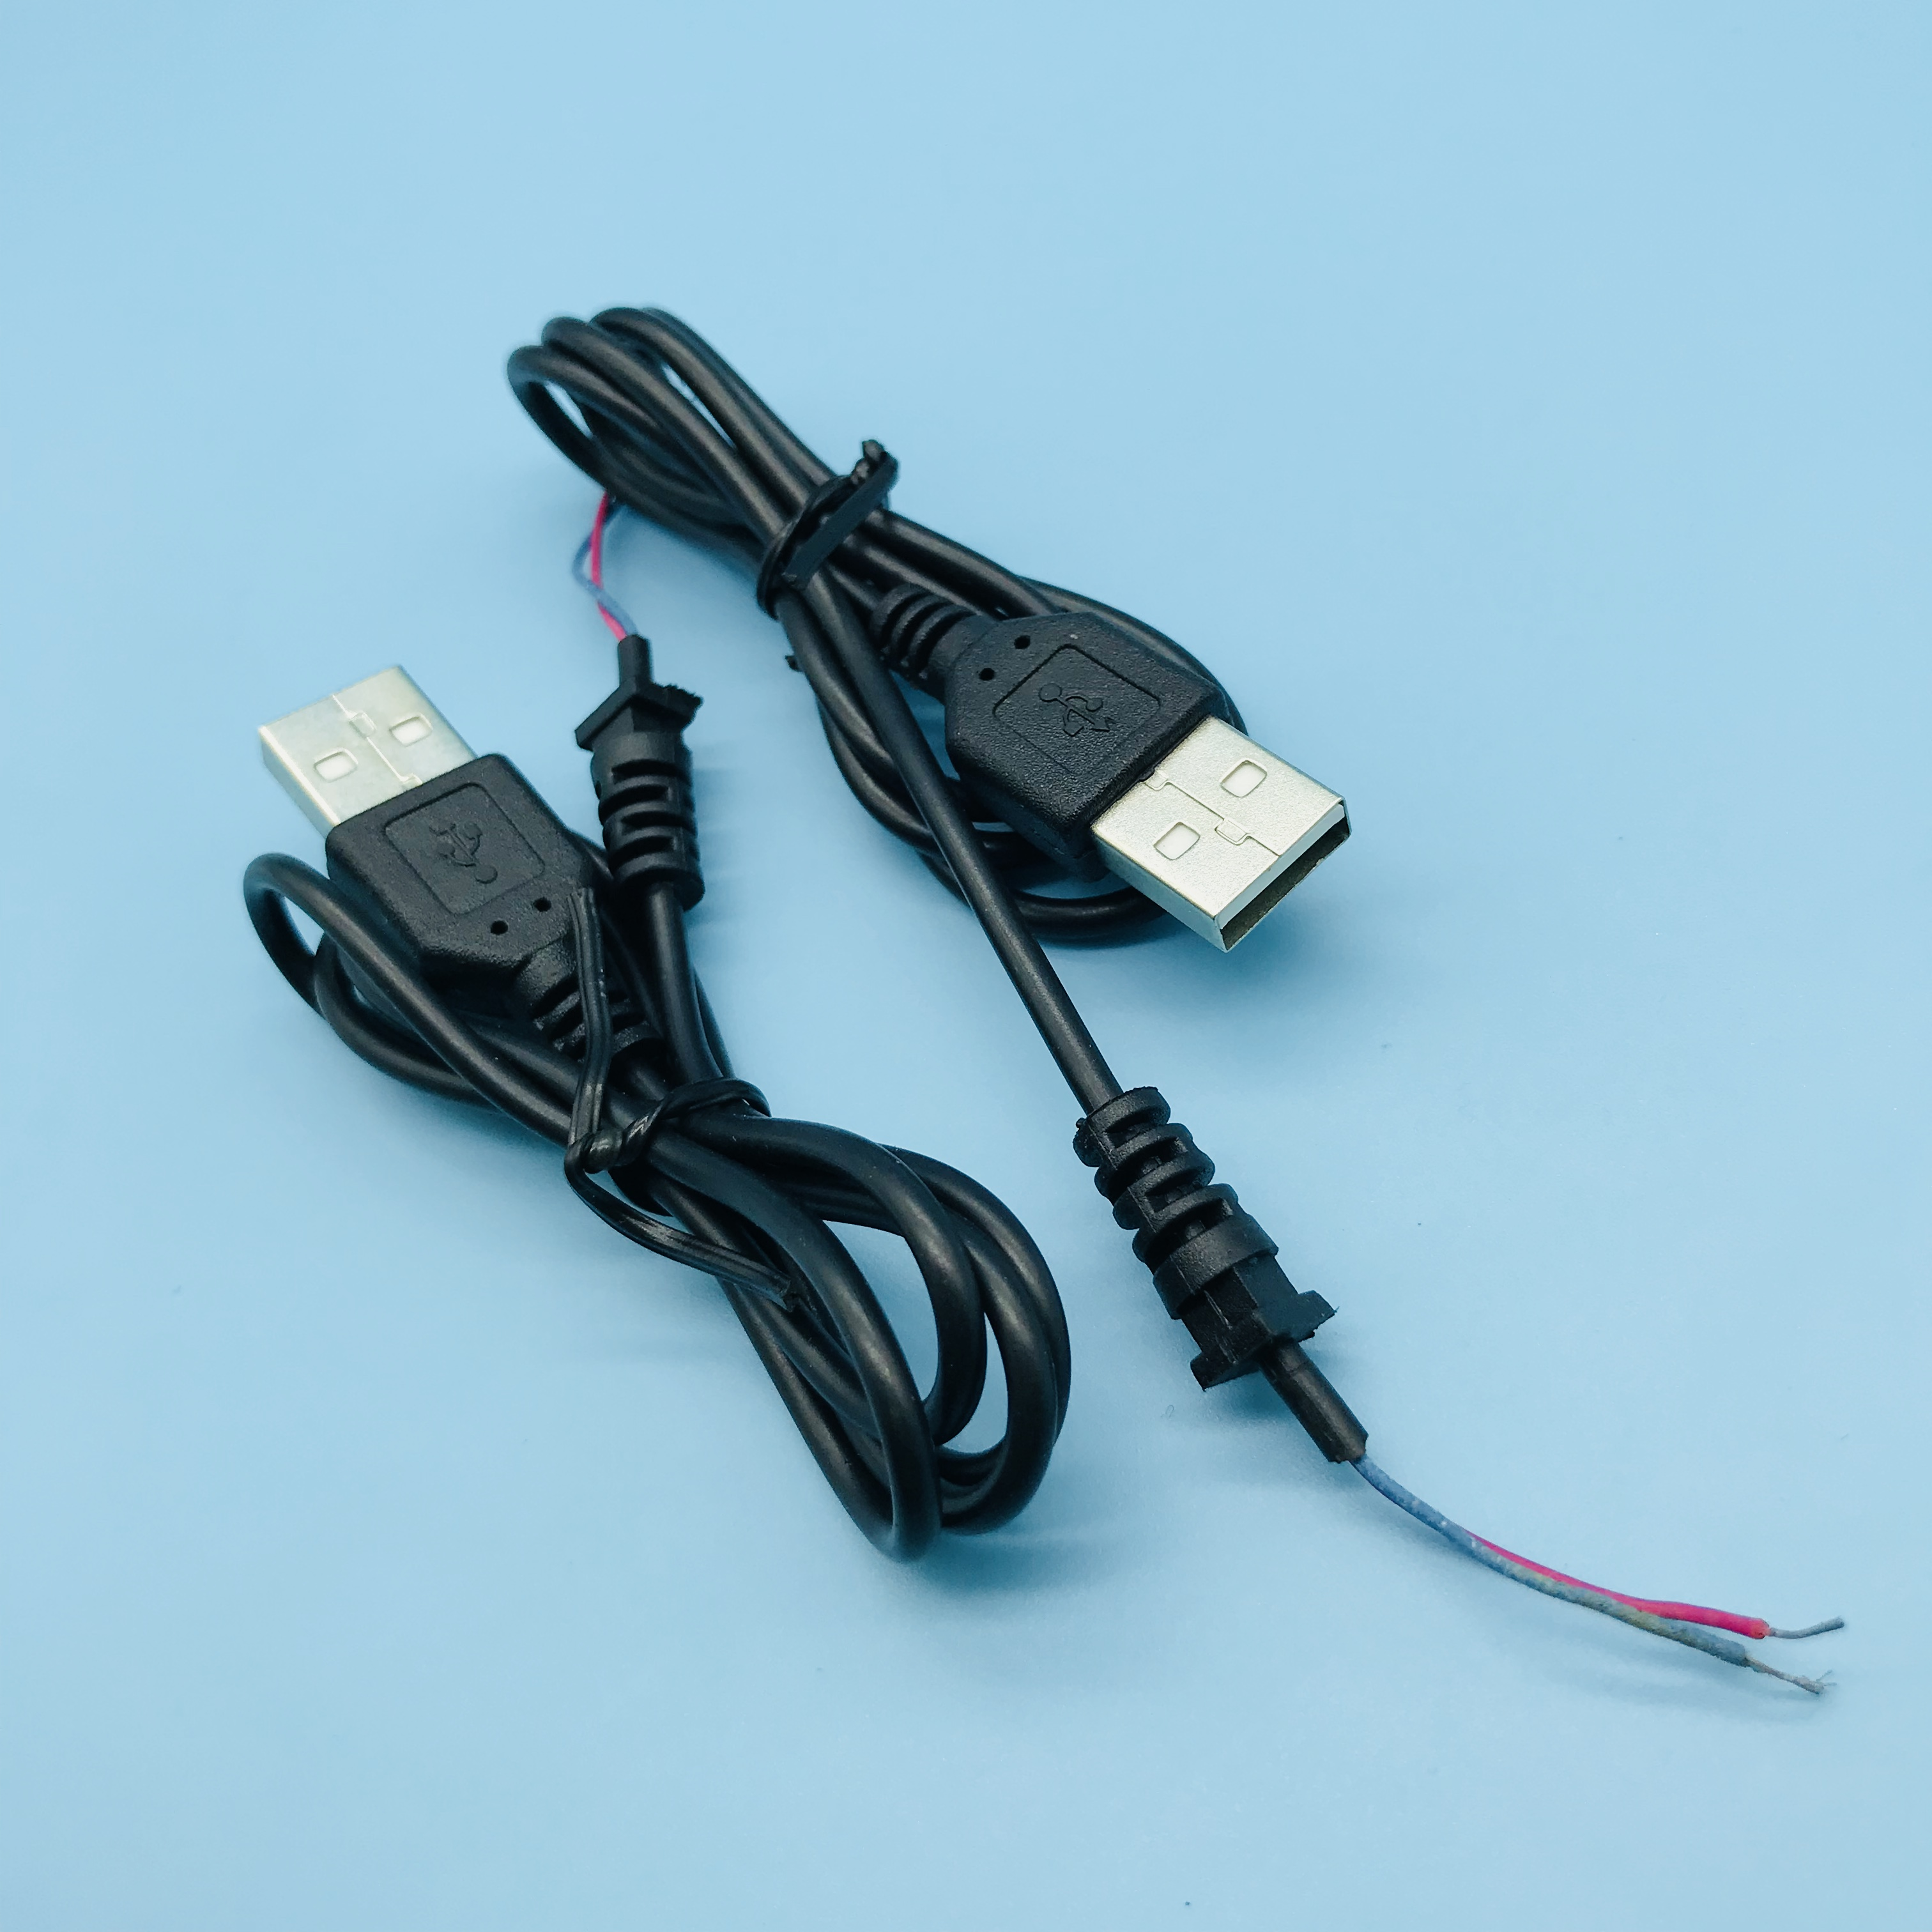 Braid Shield USB 2.0 Type A Male naar 4 Draden Open Kabel voor DIY OEM